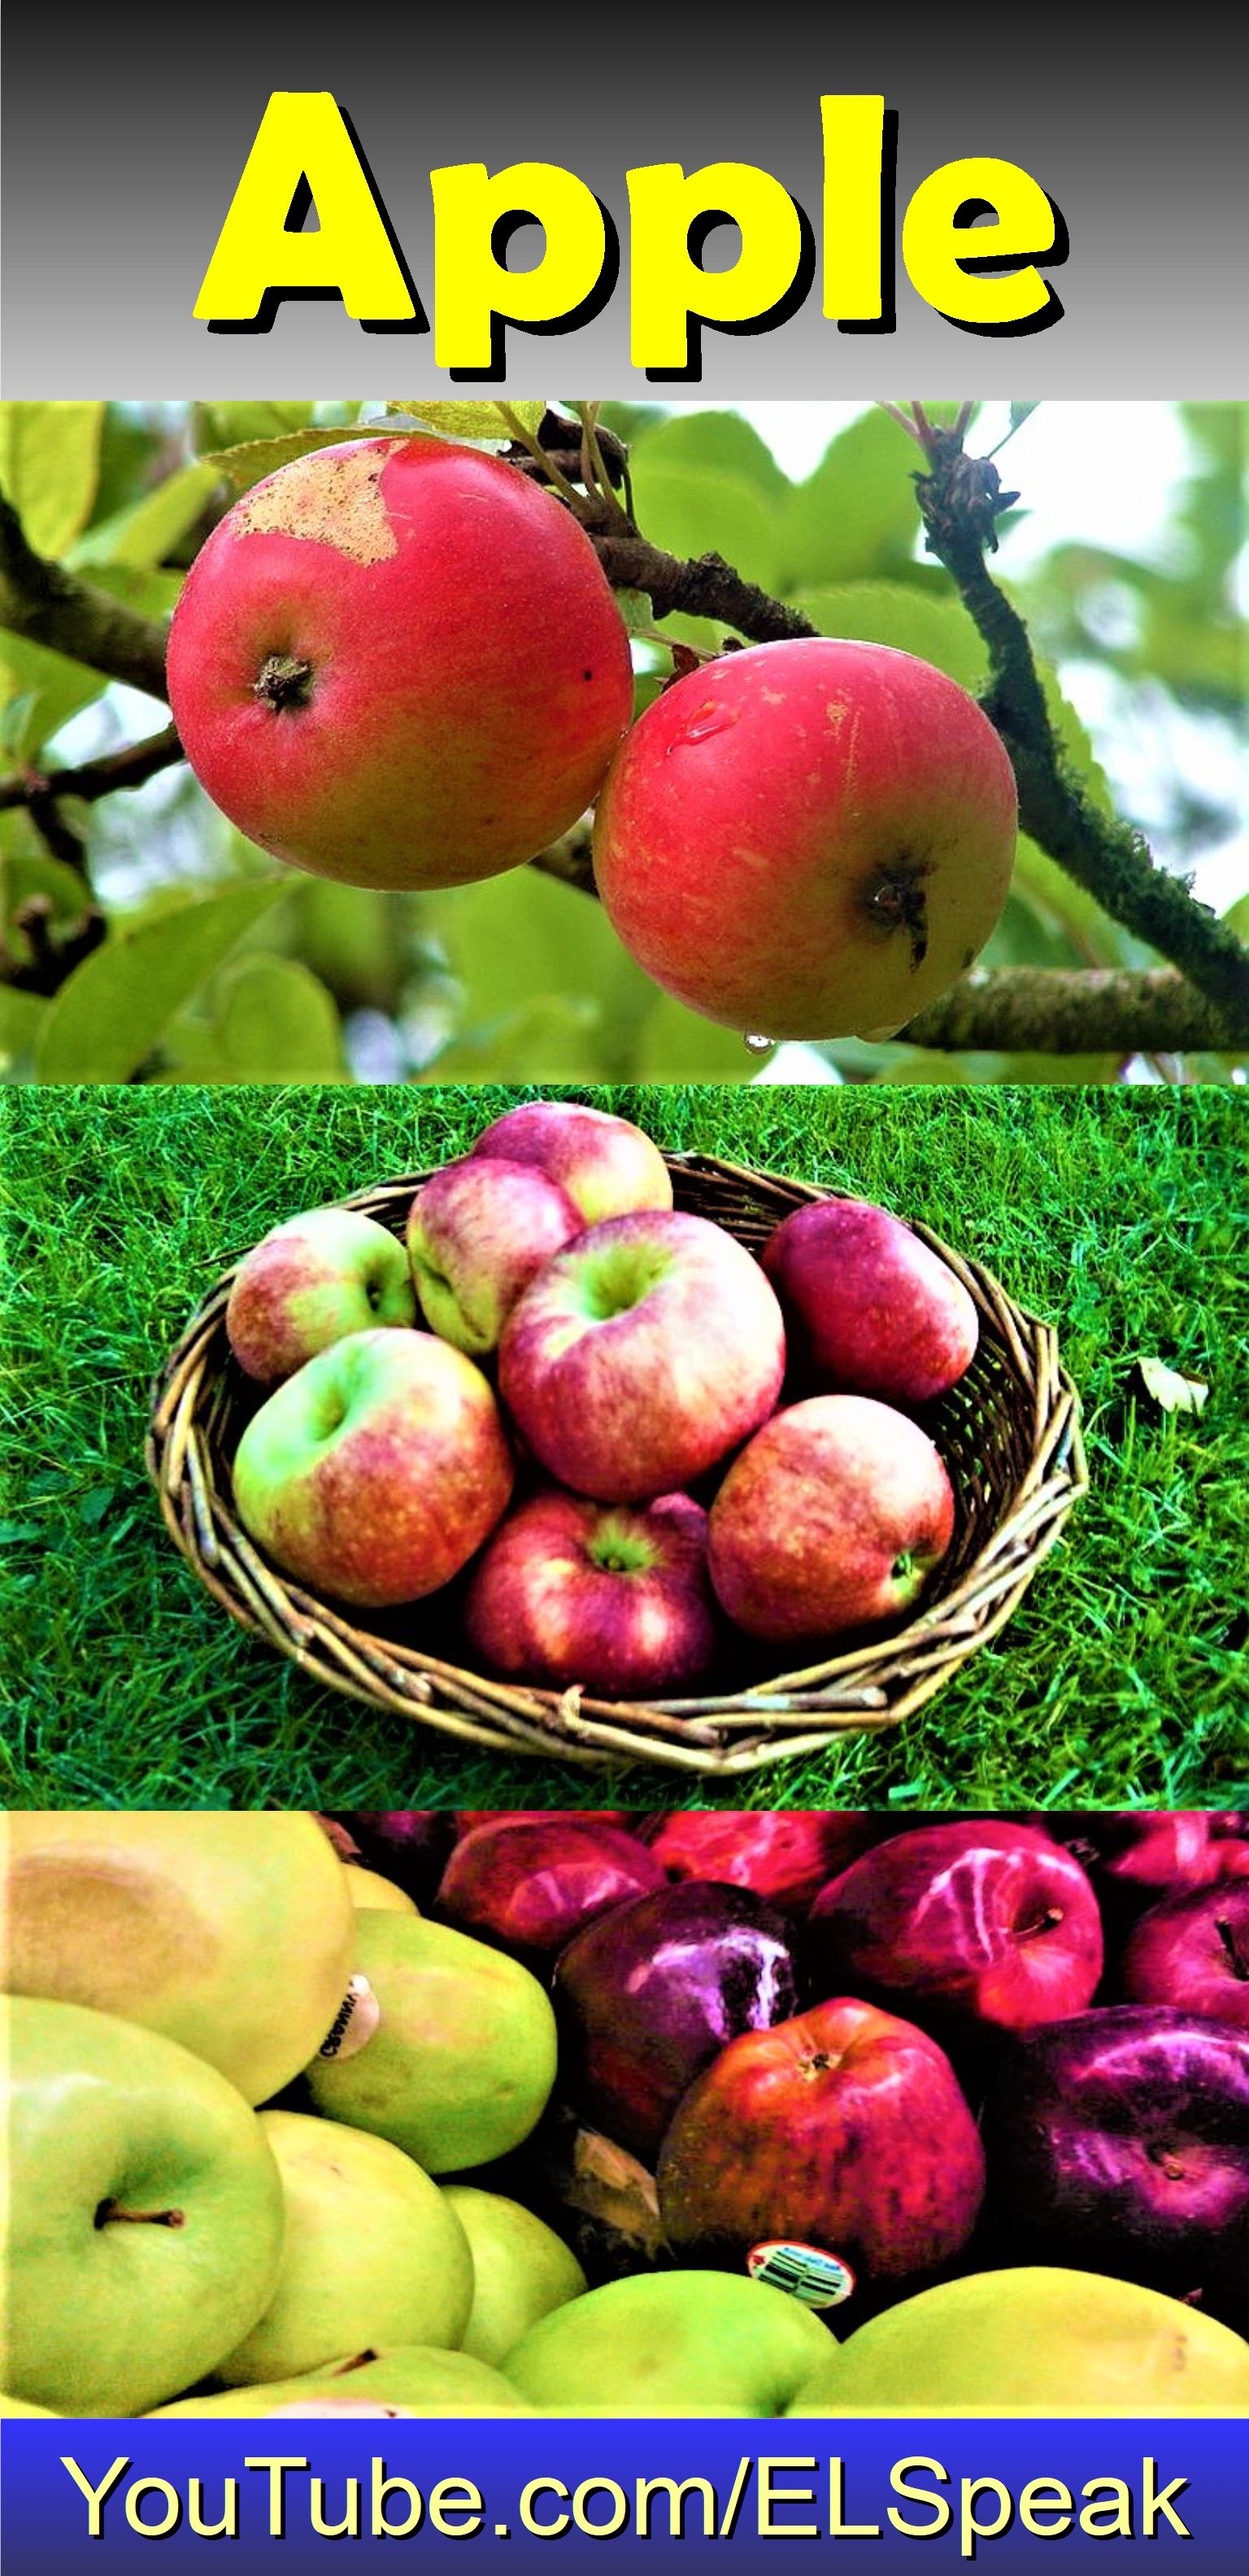 Apple Malus Domestica Is An Edible Pomegranate Fruit Other Apple Trees Species Of The Genus Malus Or Hybrids Of That Apples Can Be Red Yellow Or Green